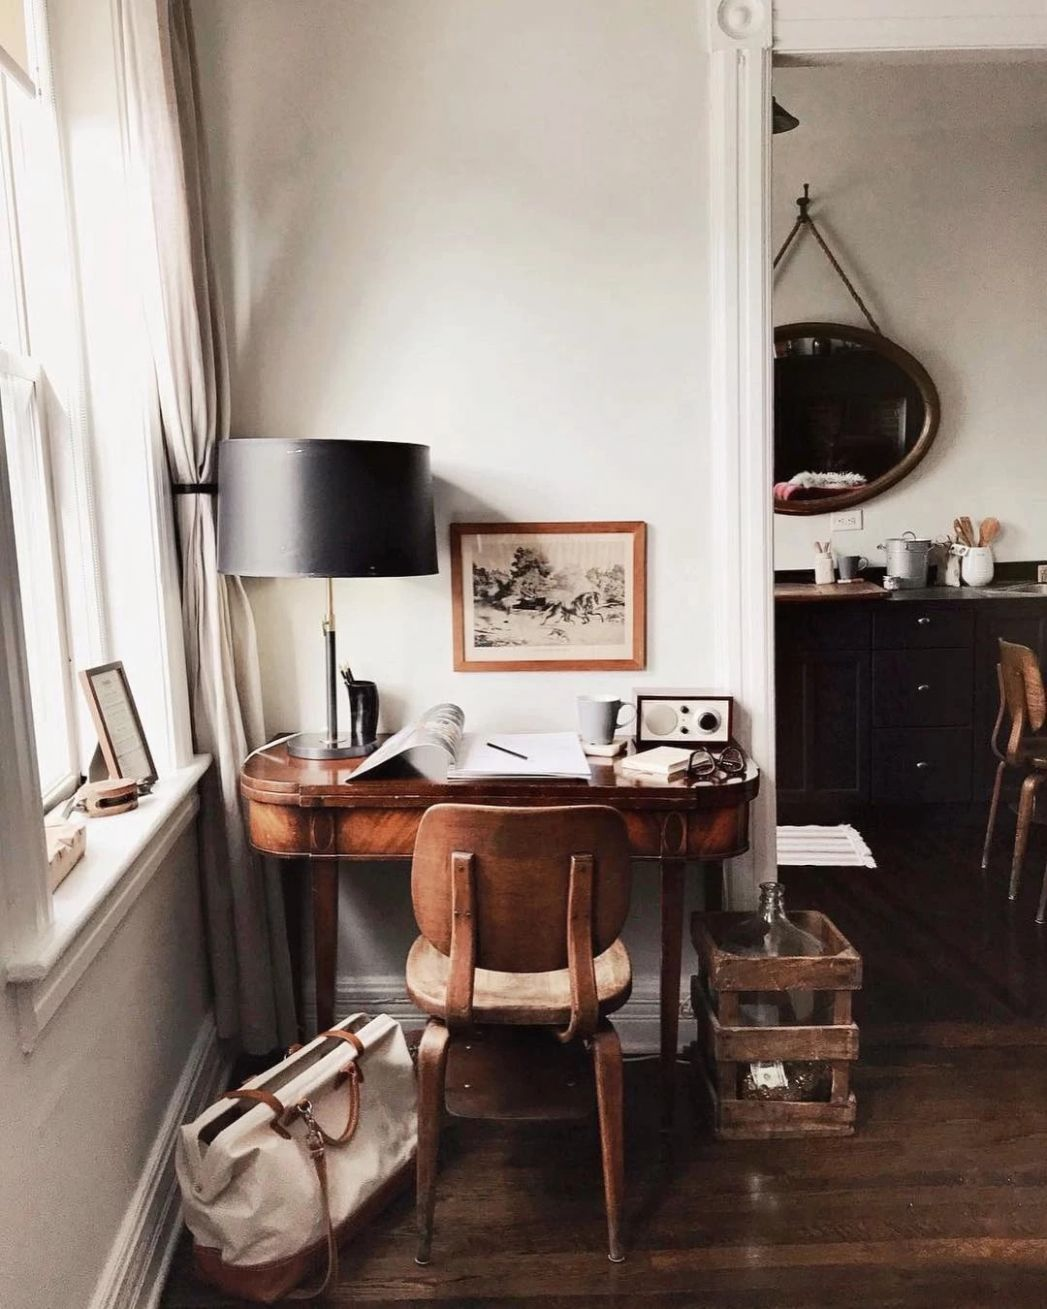 Decorating on a Budget: Home Office Ideas - DecorMatters - Medium - home office ideas budget